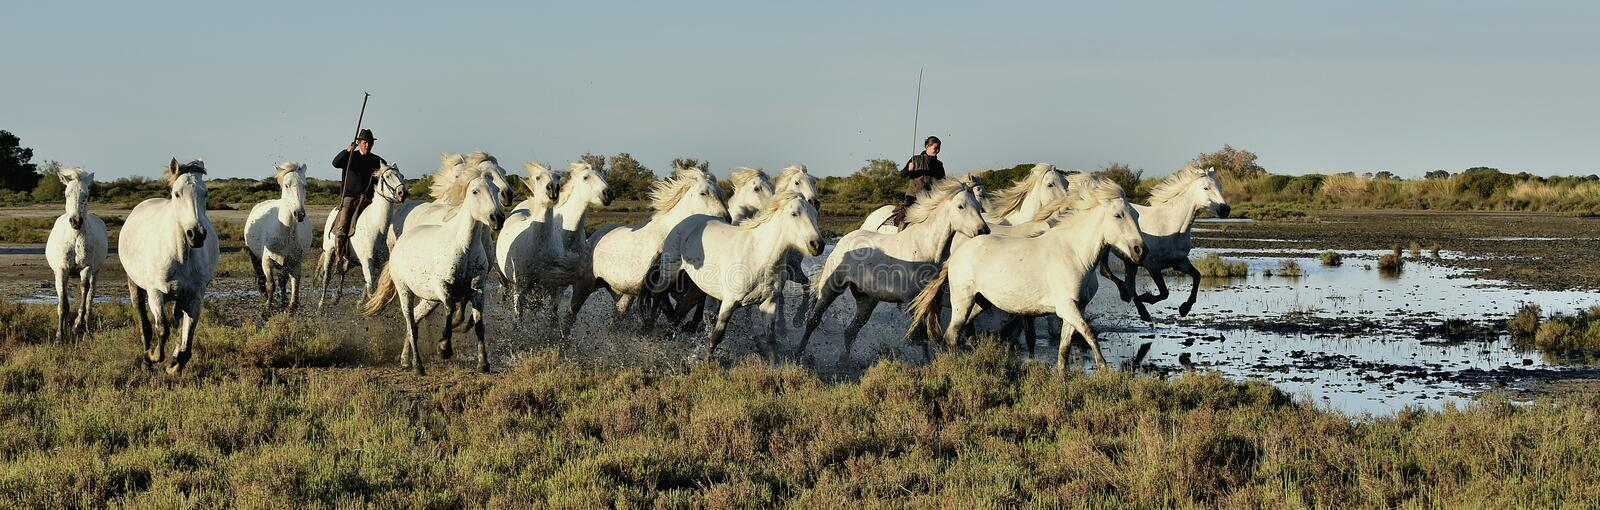 Raiders and Herd of White Camargue horses running royalty free stock images